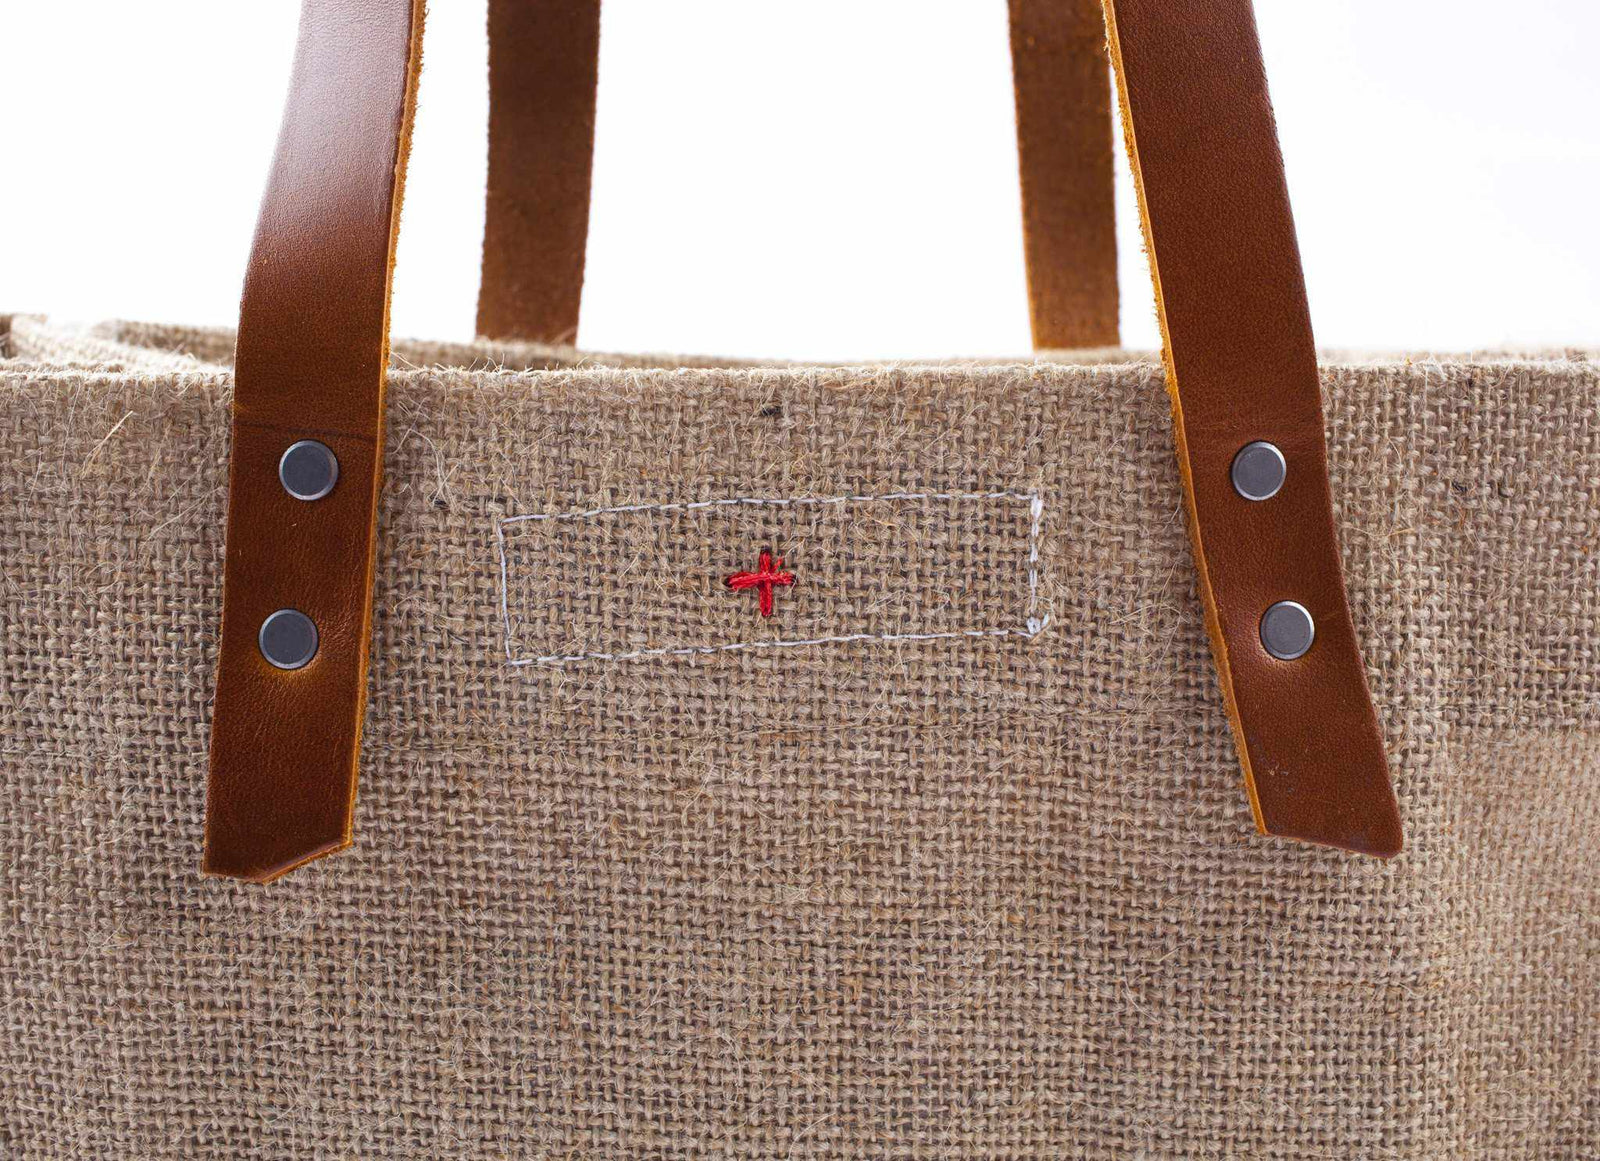 Customize Your Standard Apolis Wine Tote, through May 31 Only